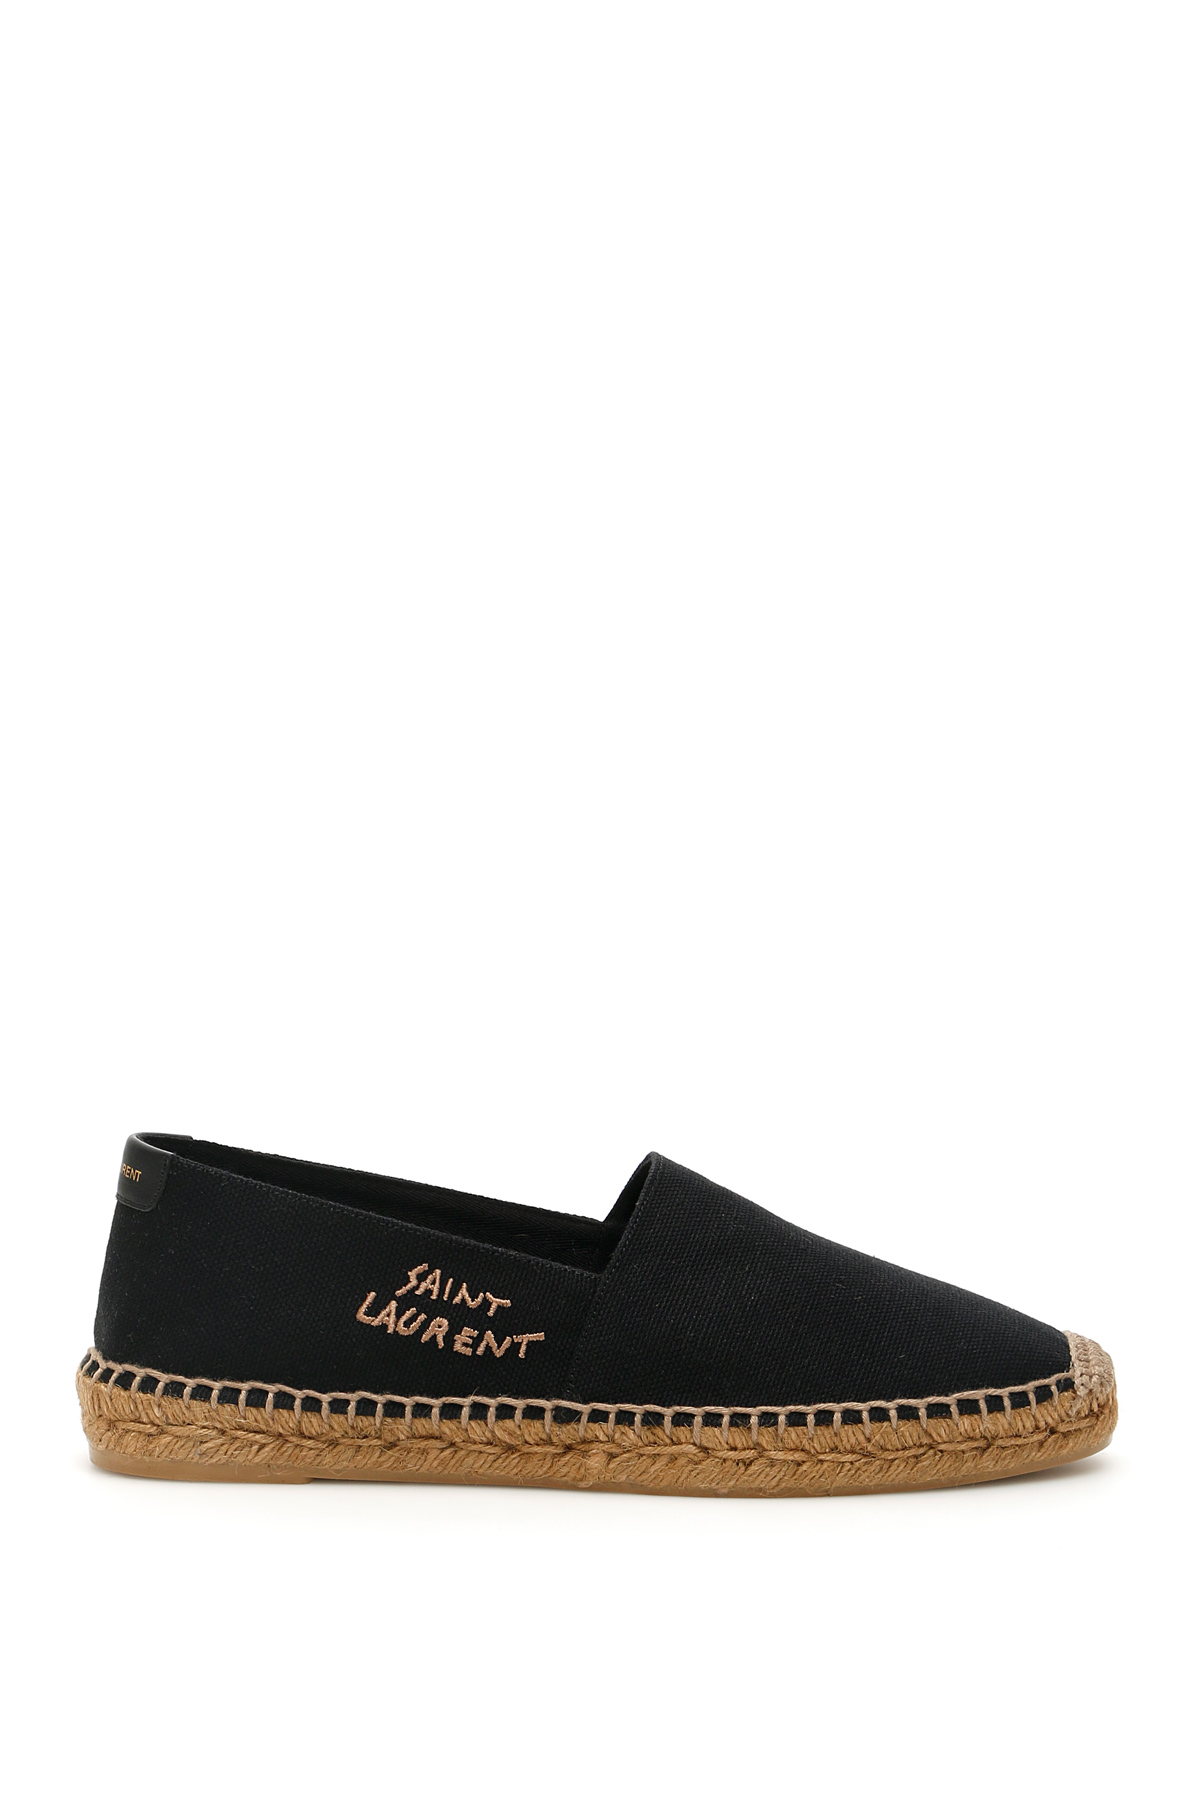 SAINT LAURENT SIGNATURE CANVAS ESPADRILLES 41 Black, Brown Cotton, Linen